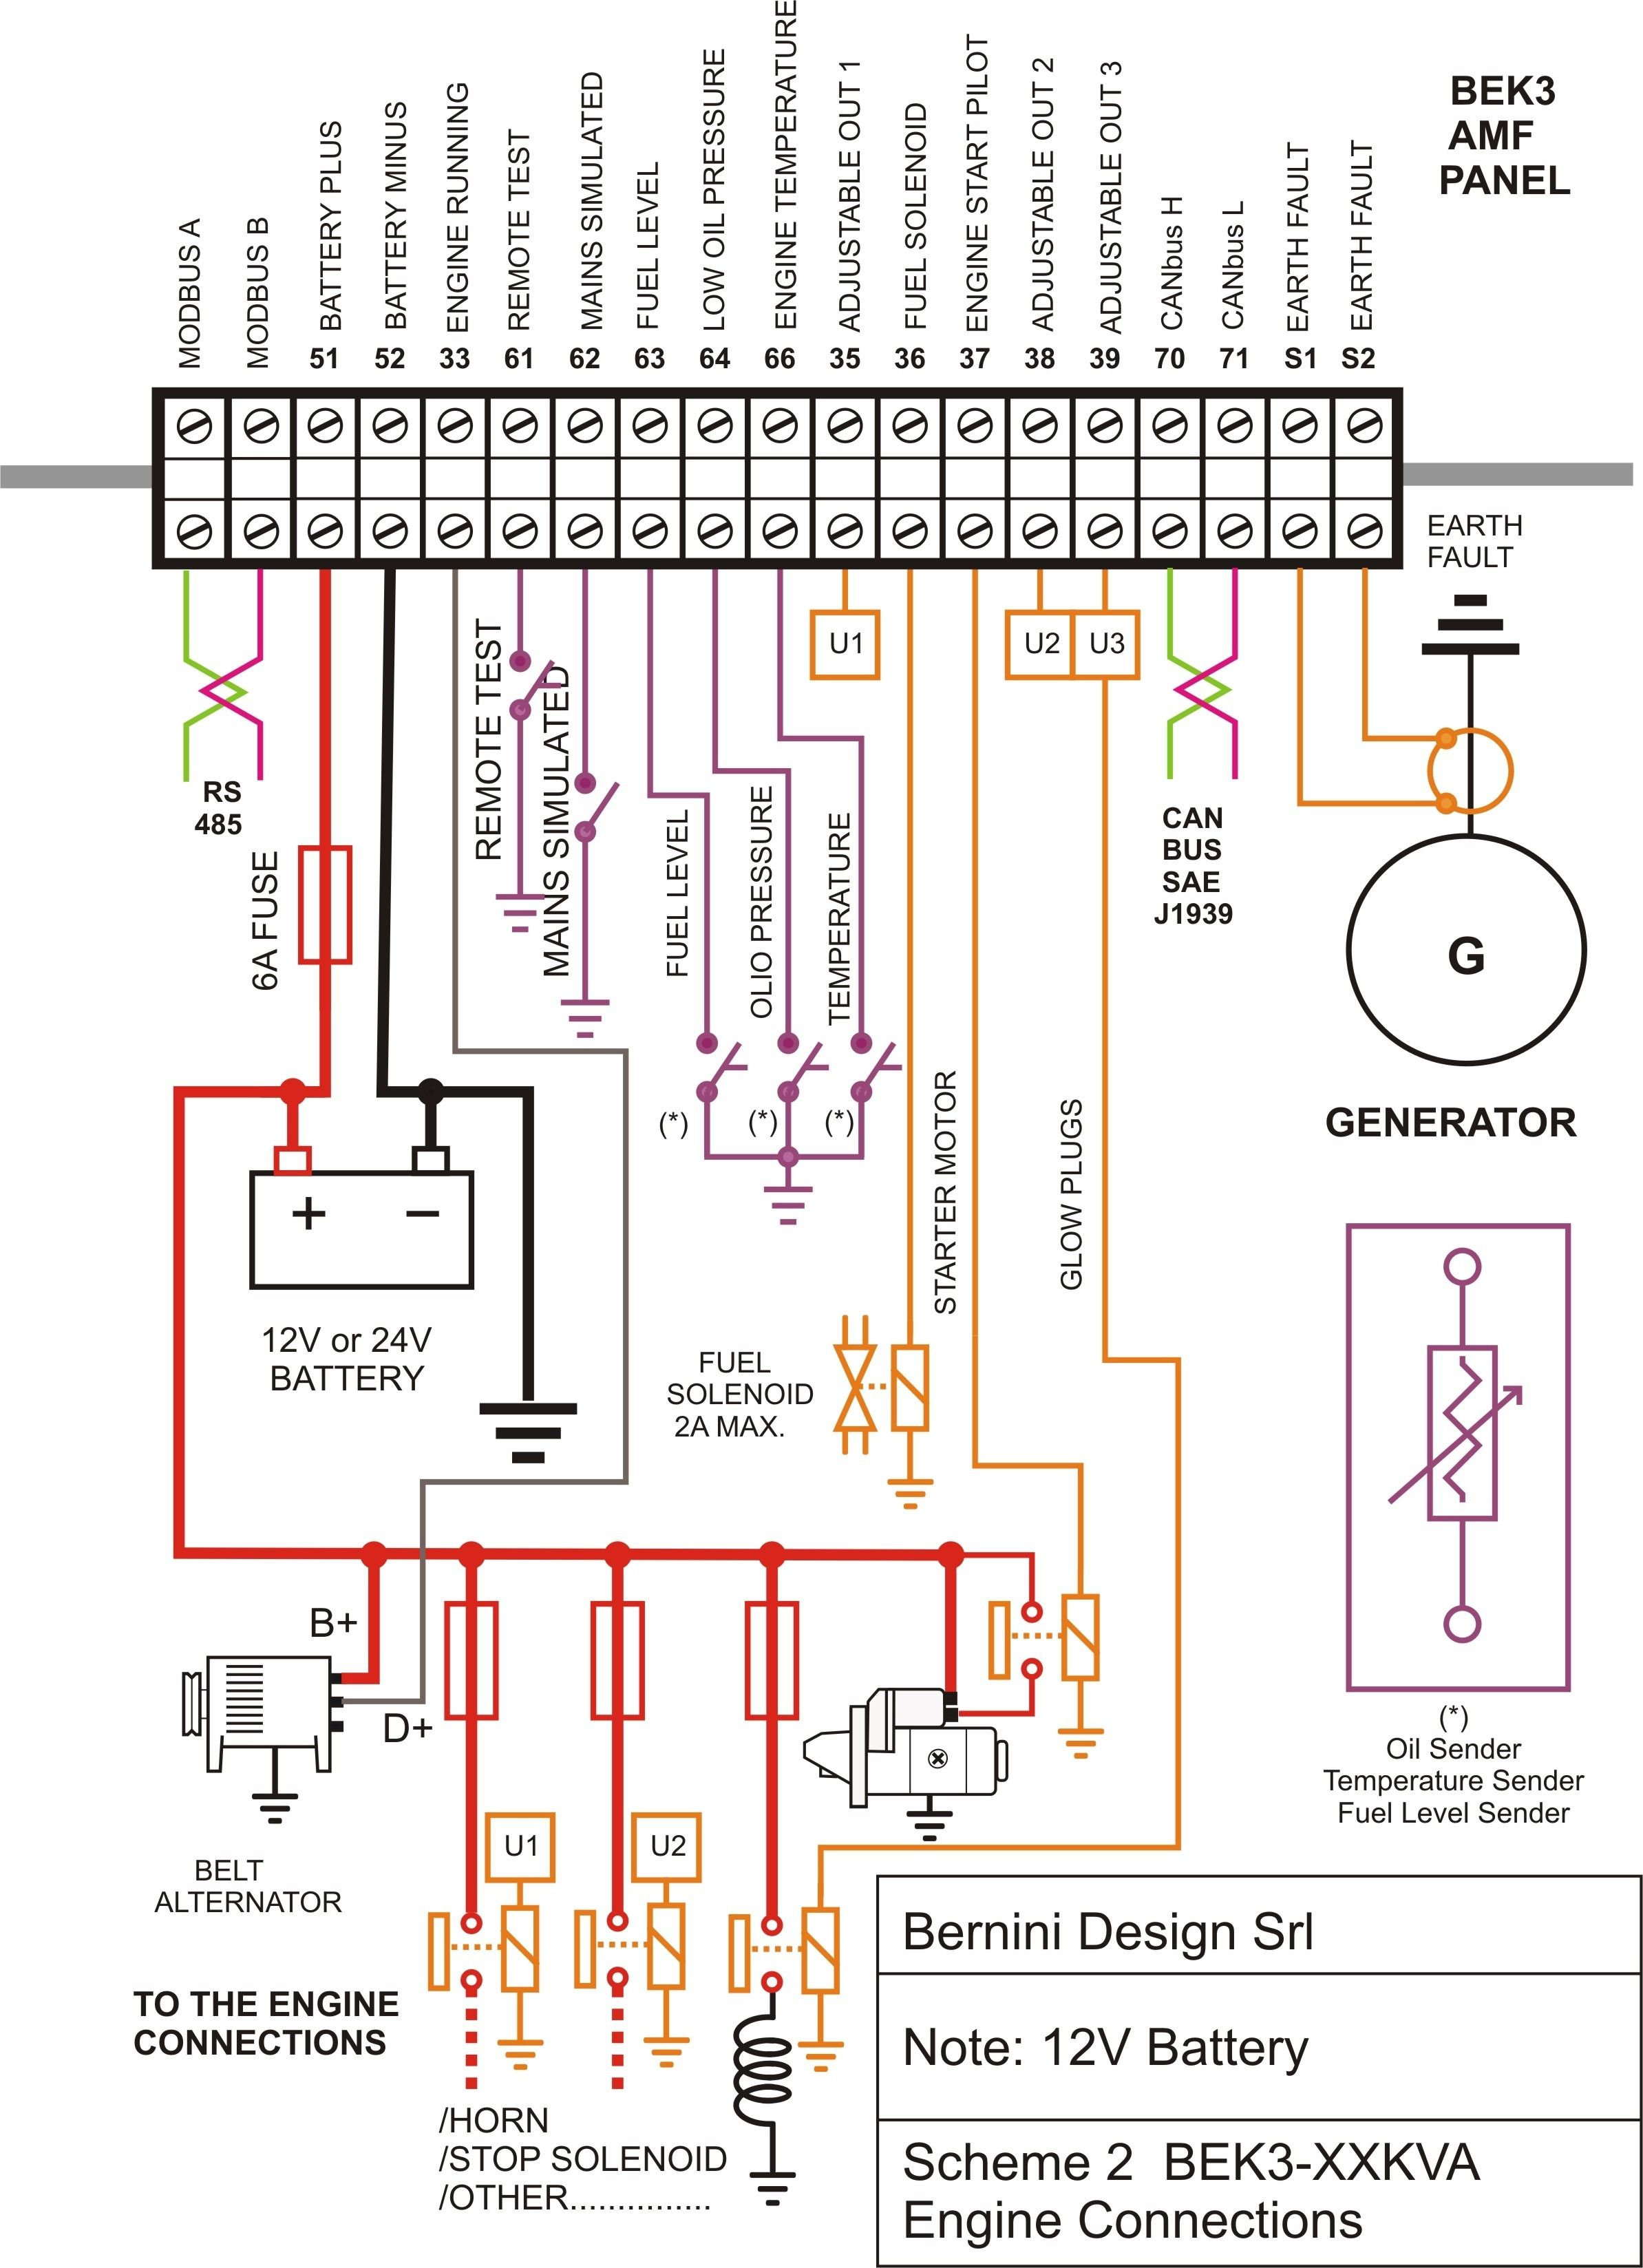 basic electrical wiring diagram pdf | wiringdiagram.org | electrical  circuit diagram, basic electrical wiring, electrical wiring diagram  pinterest